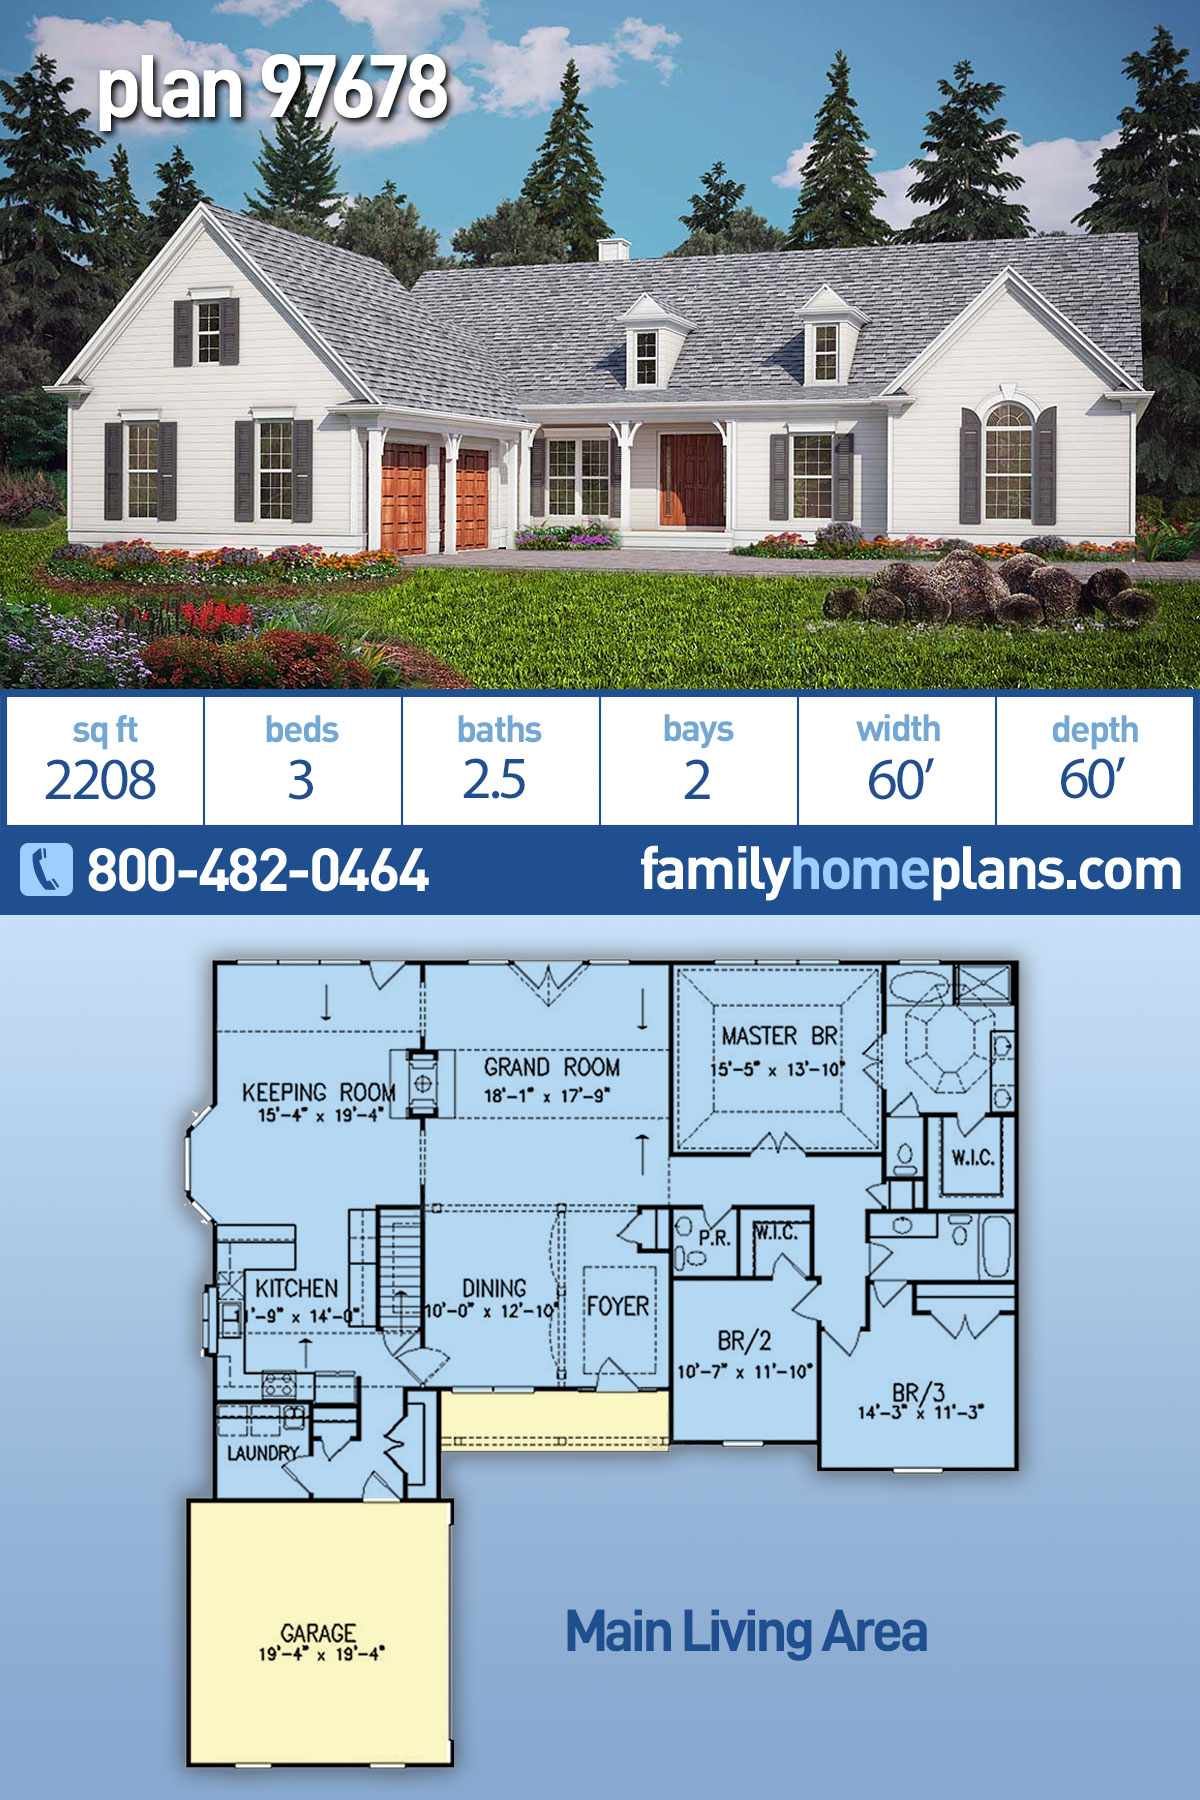 Country, Ranch, Traditional House Plan 97678 with 3 Beds, 3 Baths, 2 Car Garage